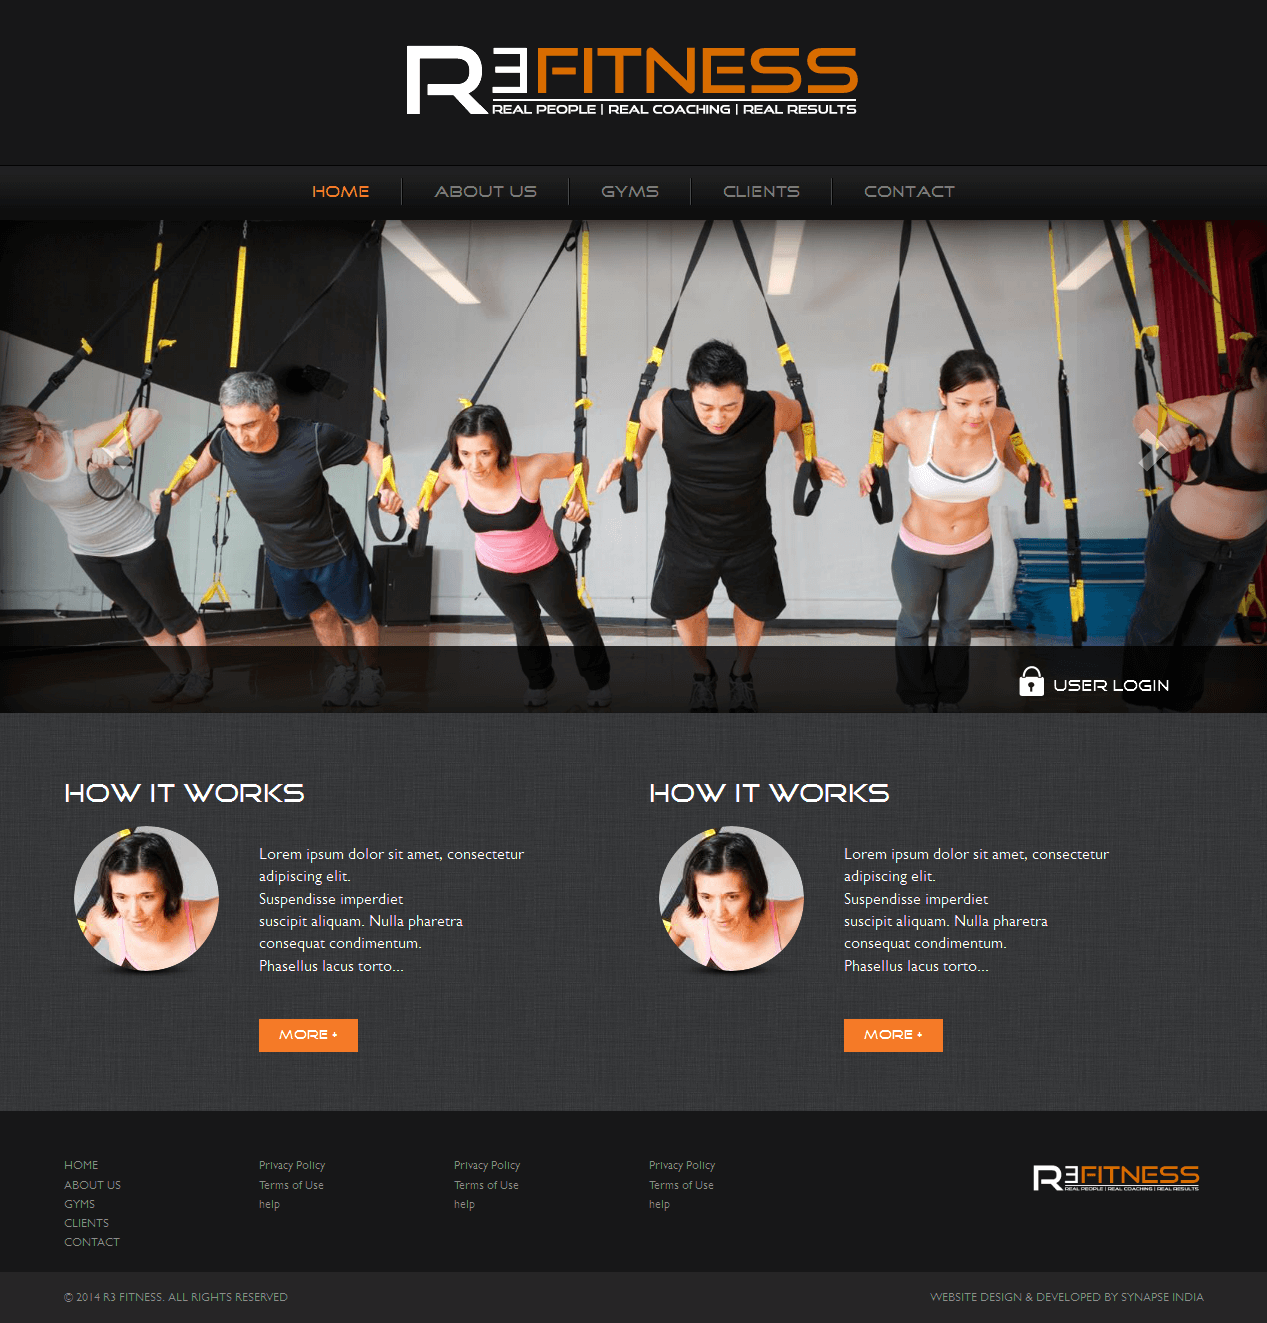 Design and Development of a PHP Powered Website for Fitness Industry